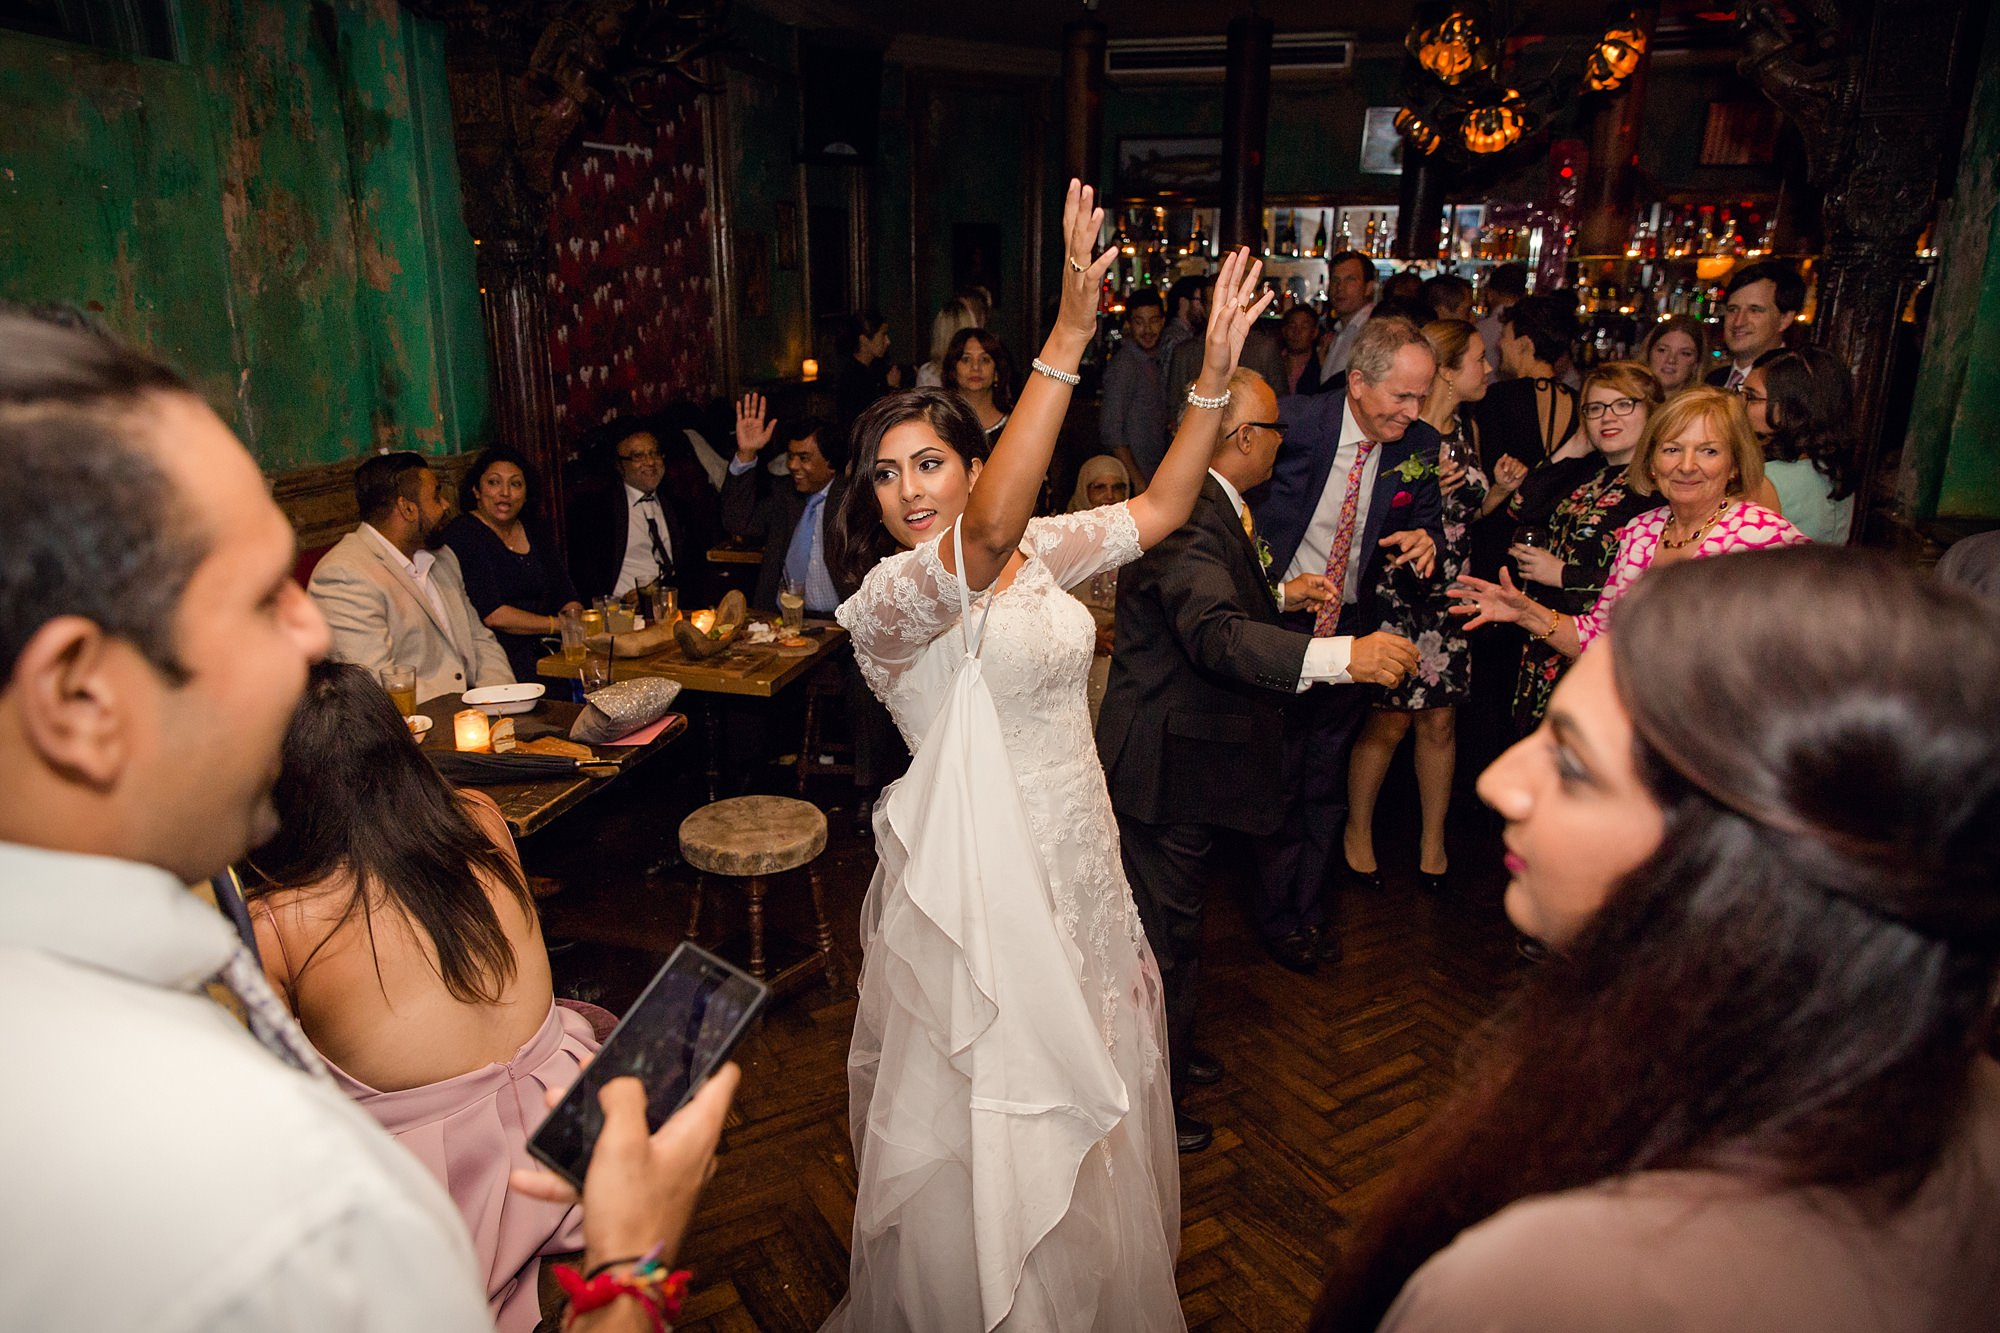 Paradise by way of Kensal Green wedding dancing bride